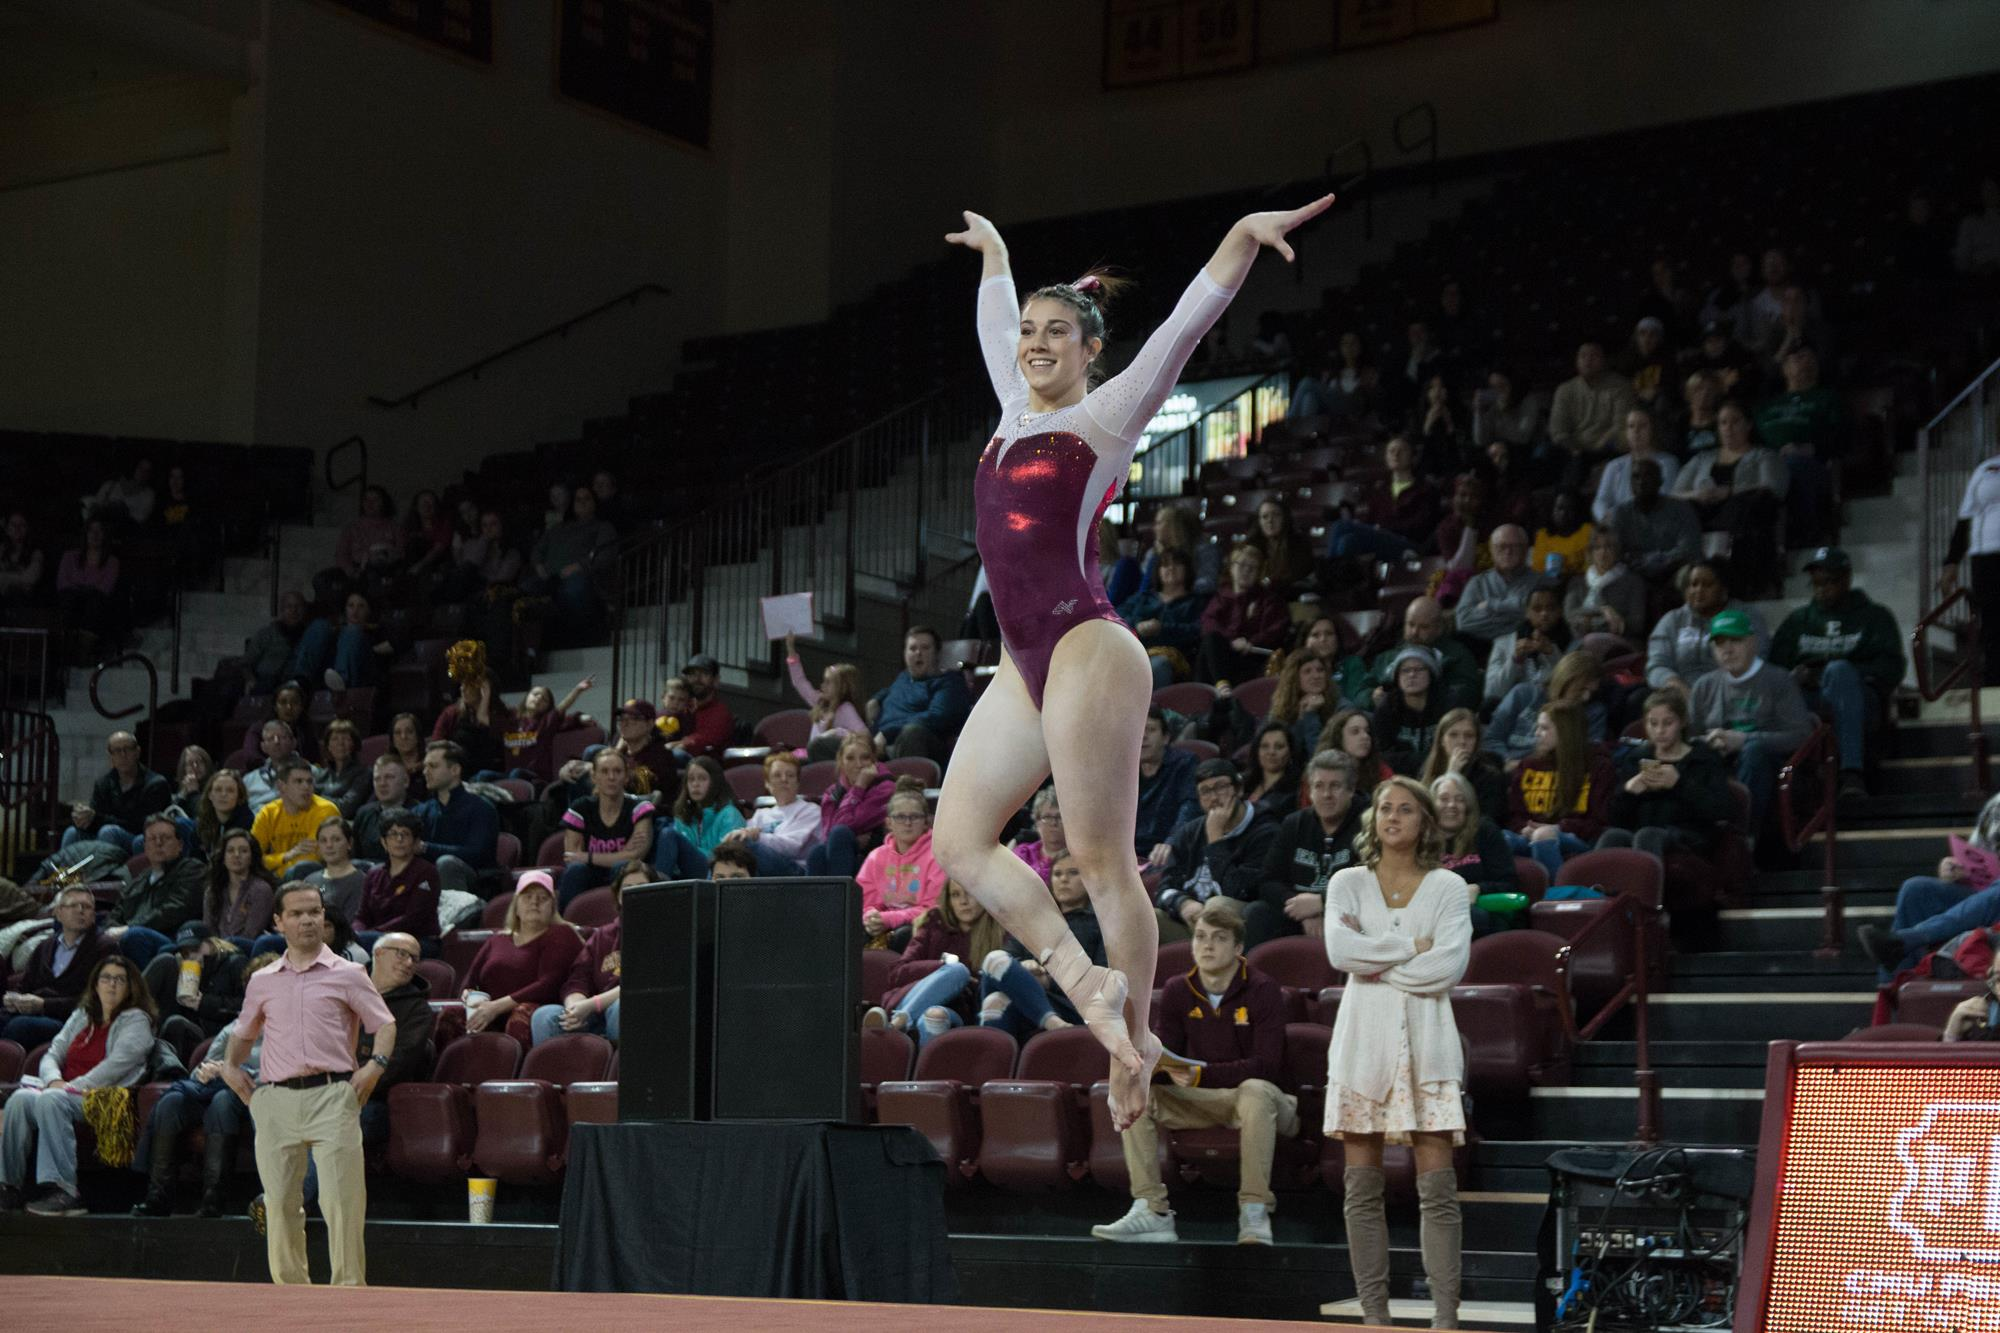 cc1da6d4101b Sierra DeMarinis - Women's Gymnastics - Central Michigan University  Athletics